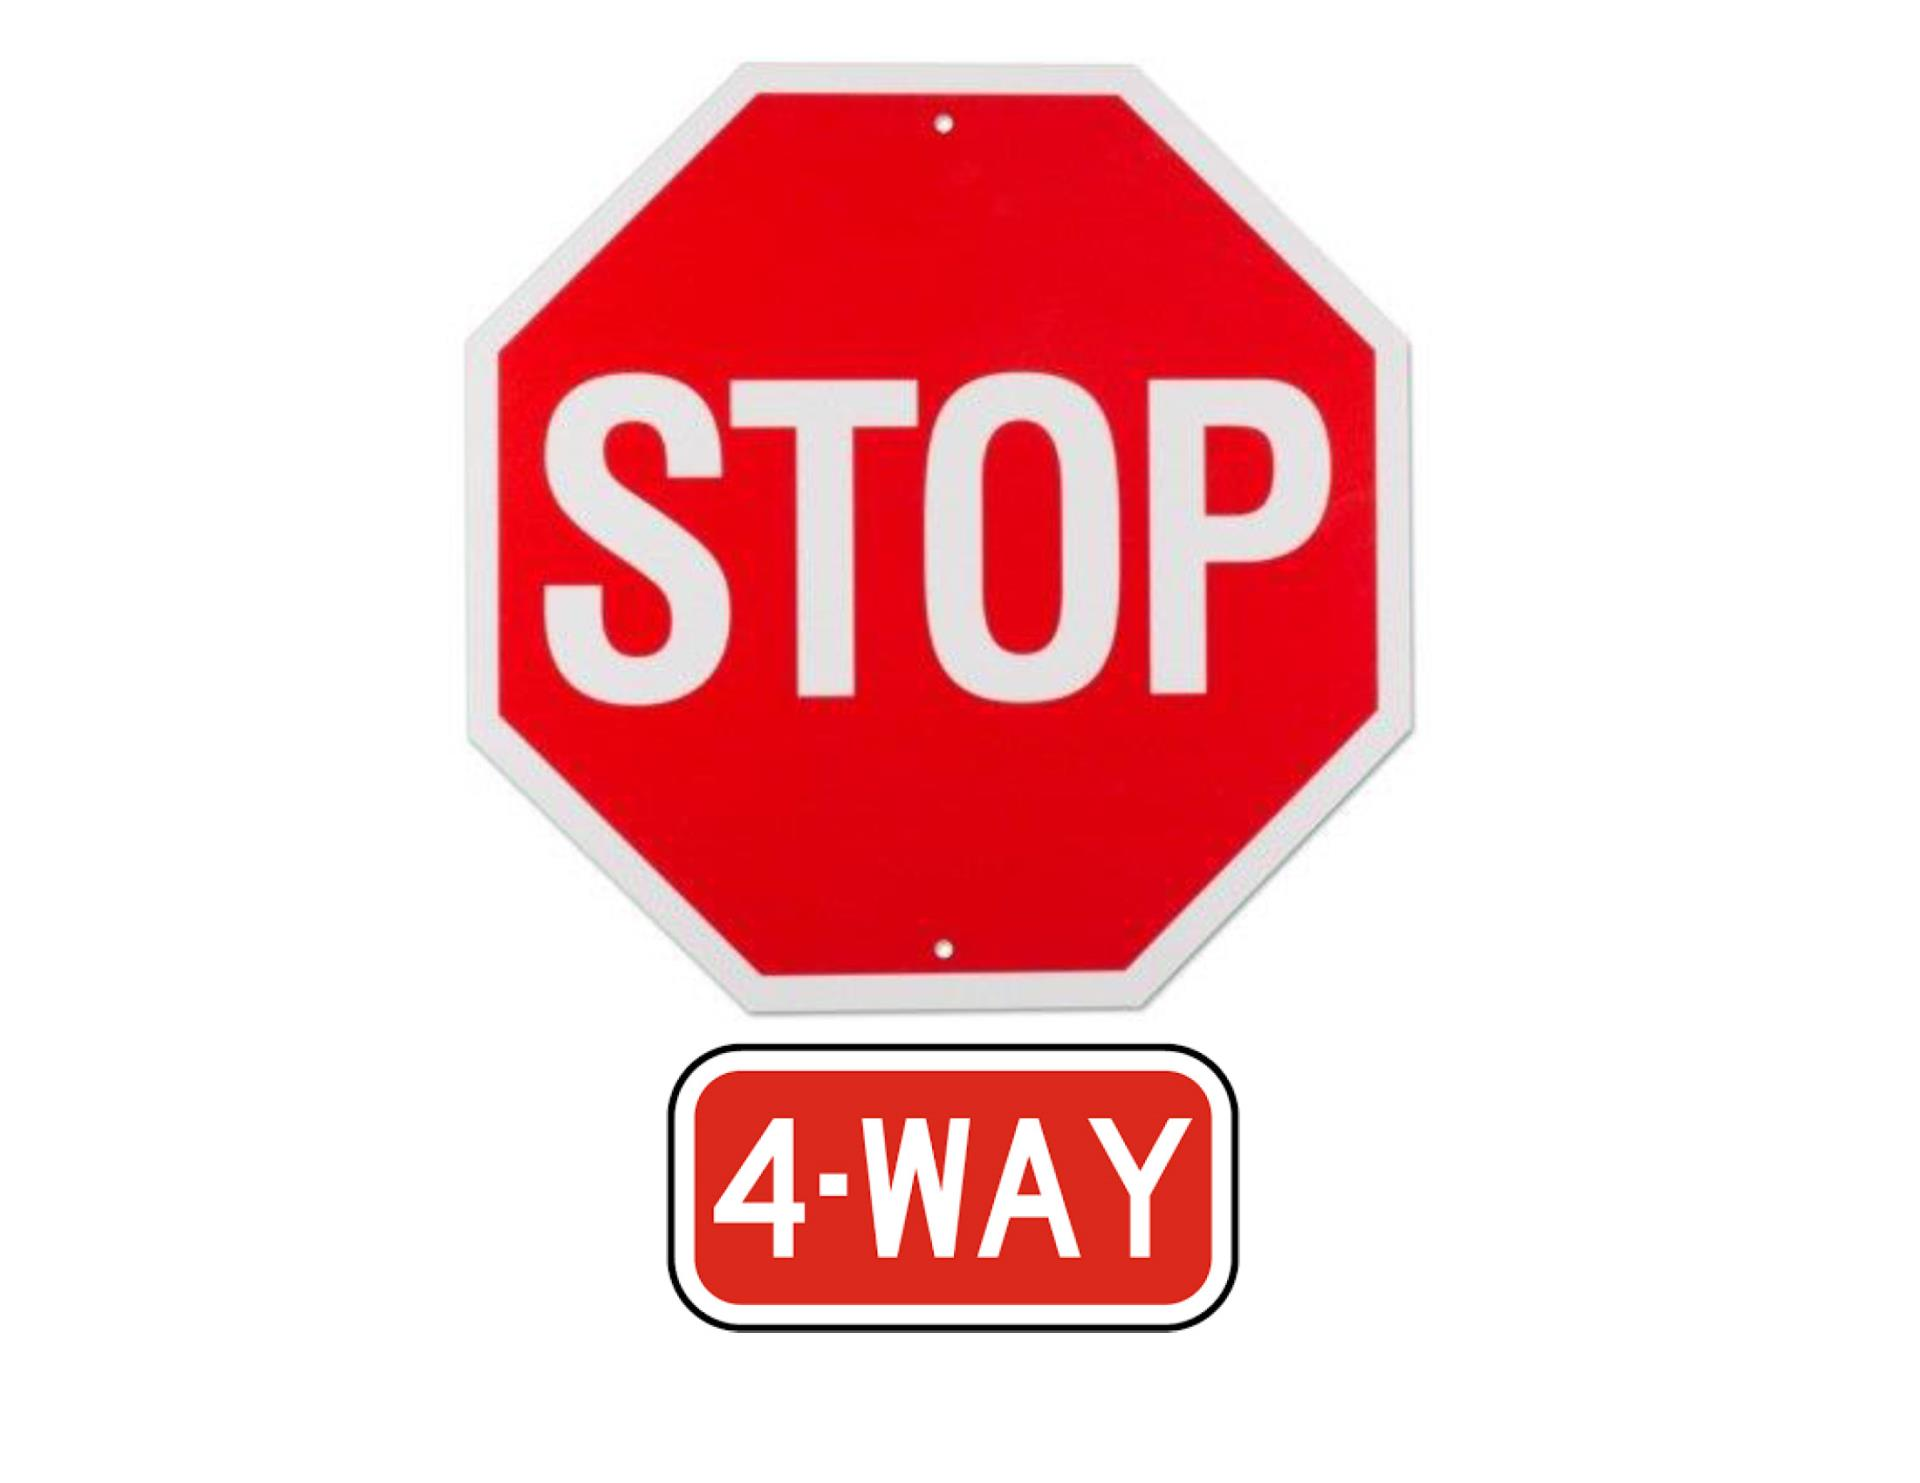 Pine Division 4-way stop sign